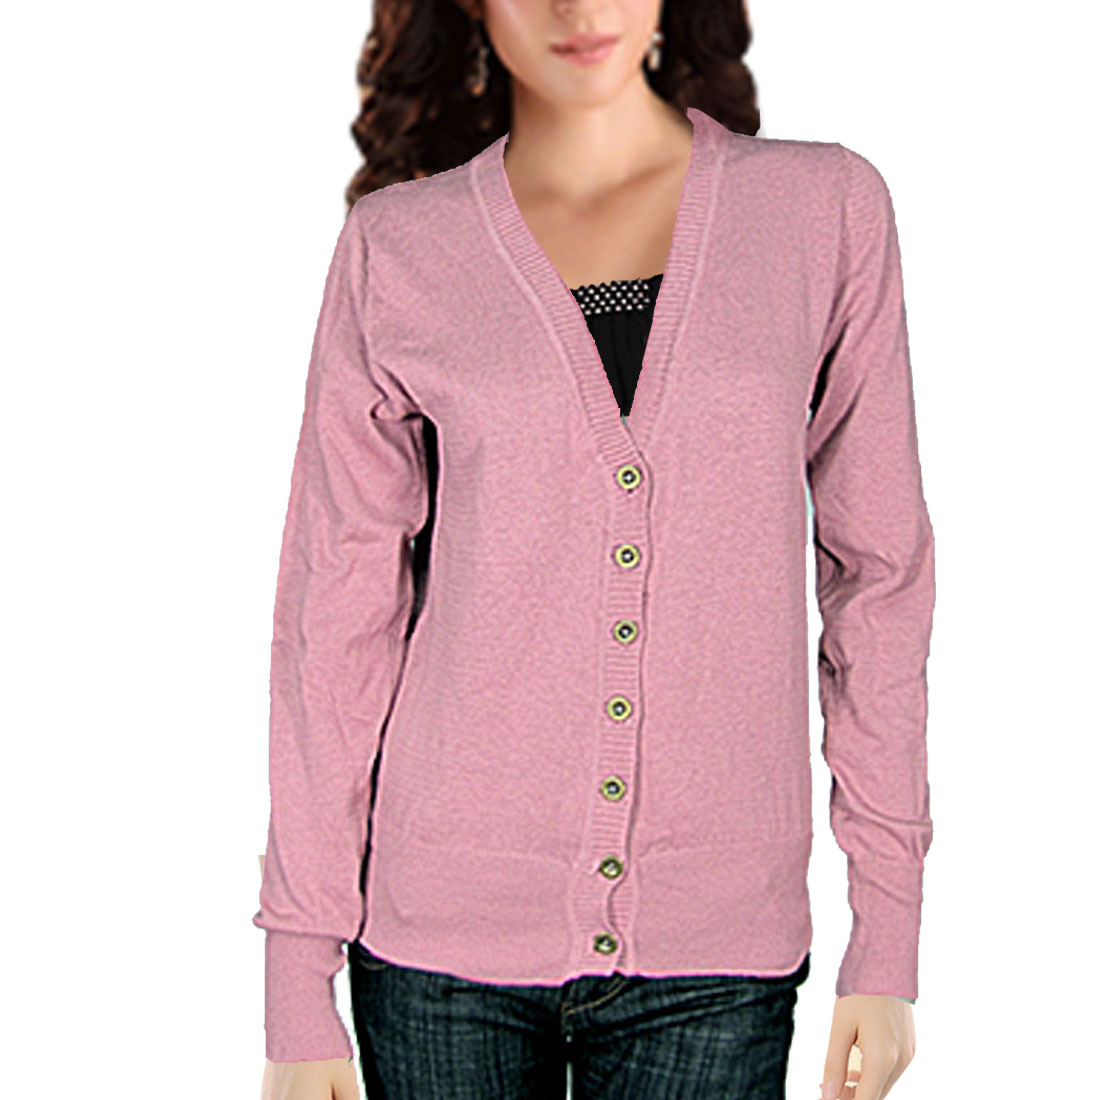 Puce Ribbed Trim Button Up V Neck Ladies Knit Cardigan XS